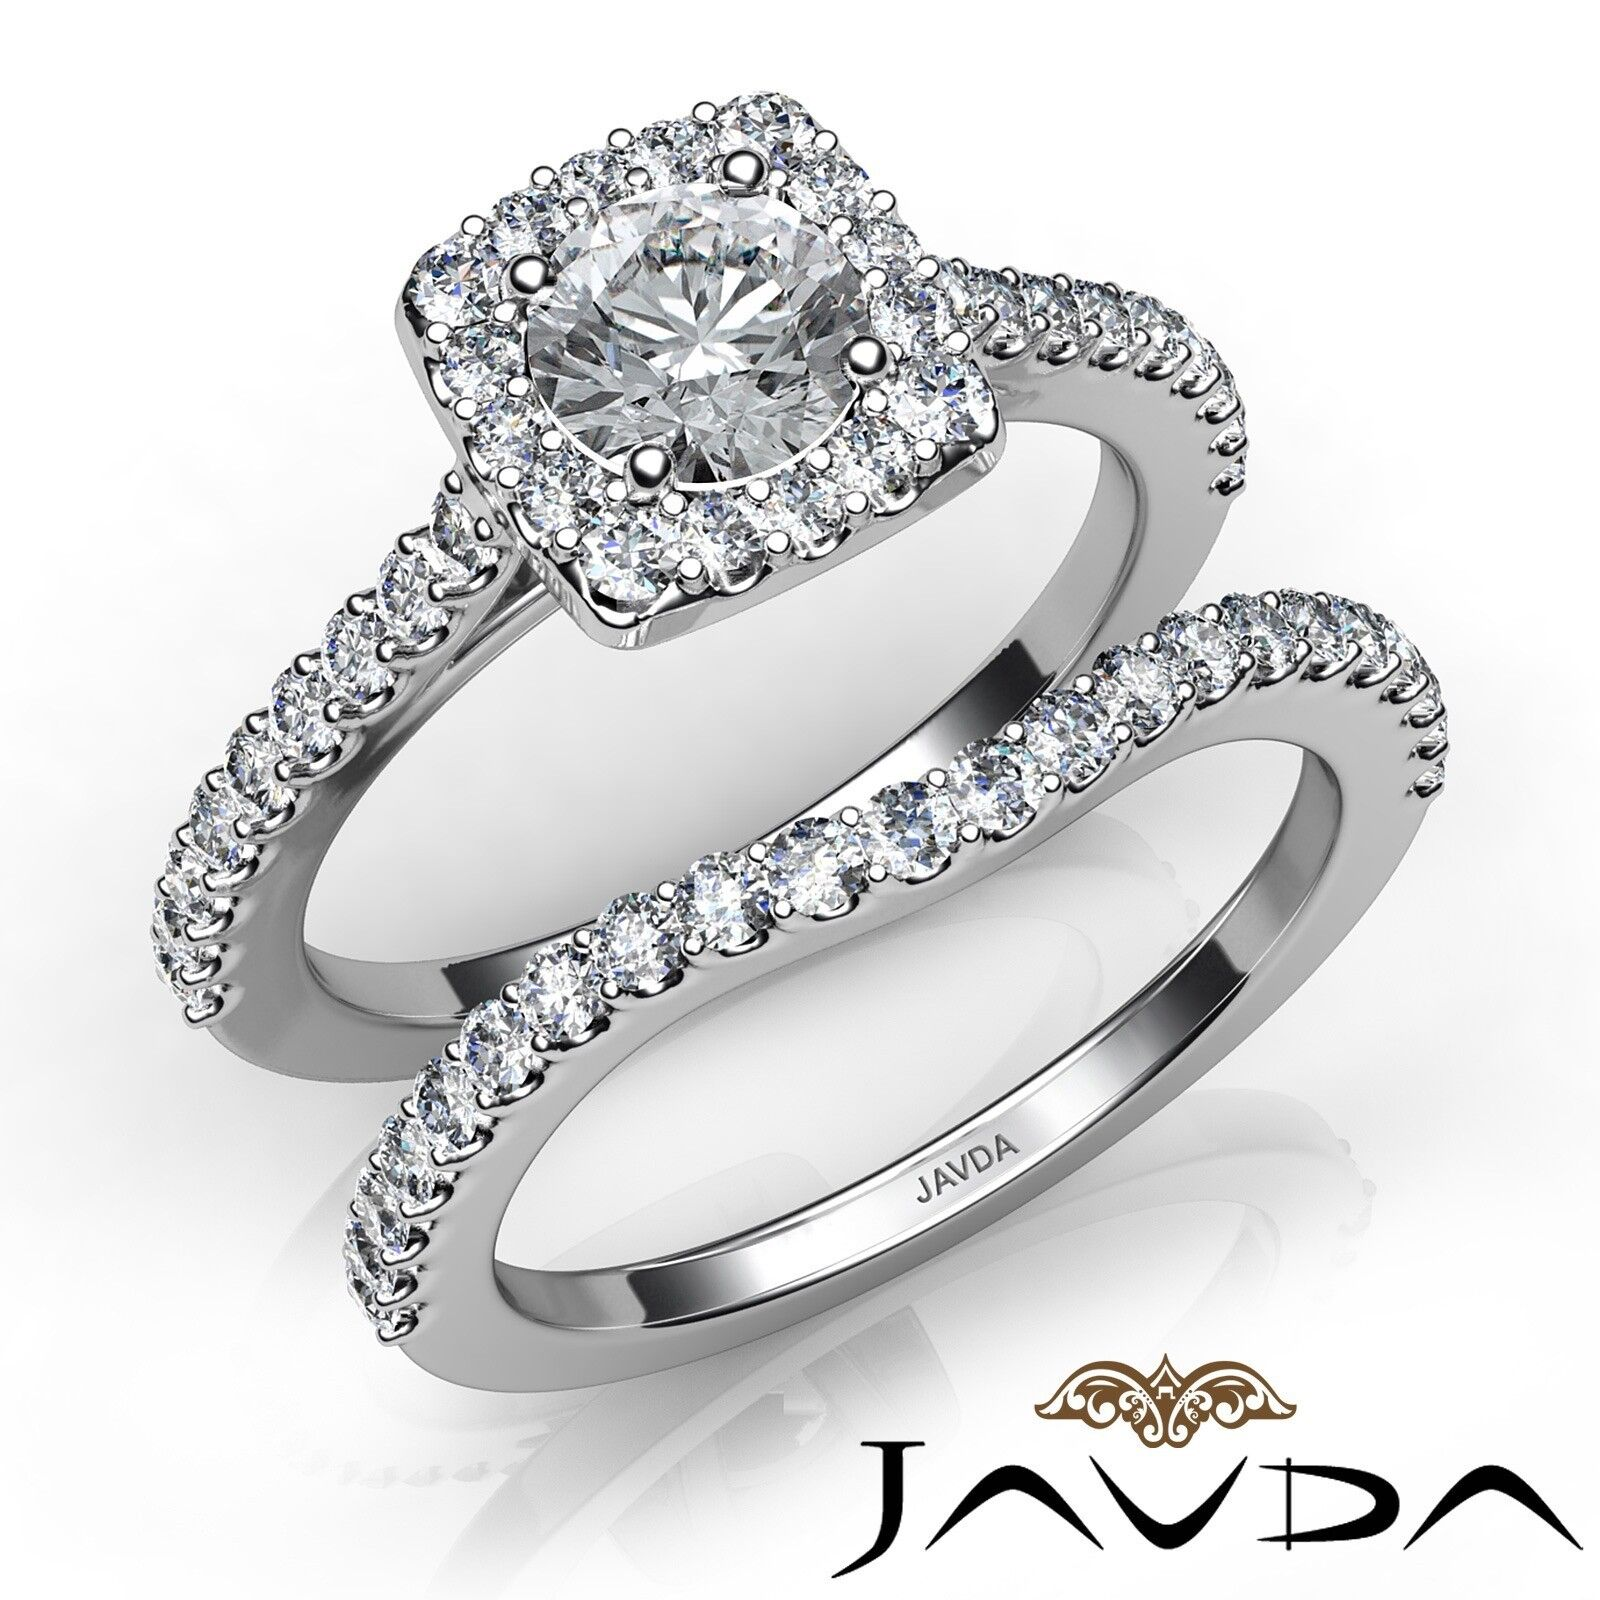 1.56ctw Halo U Prong Bridal Set Round Diamond Engagement Ring GIA F-VVS2 W Gold